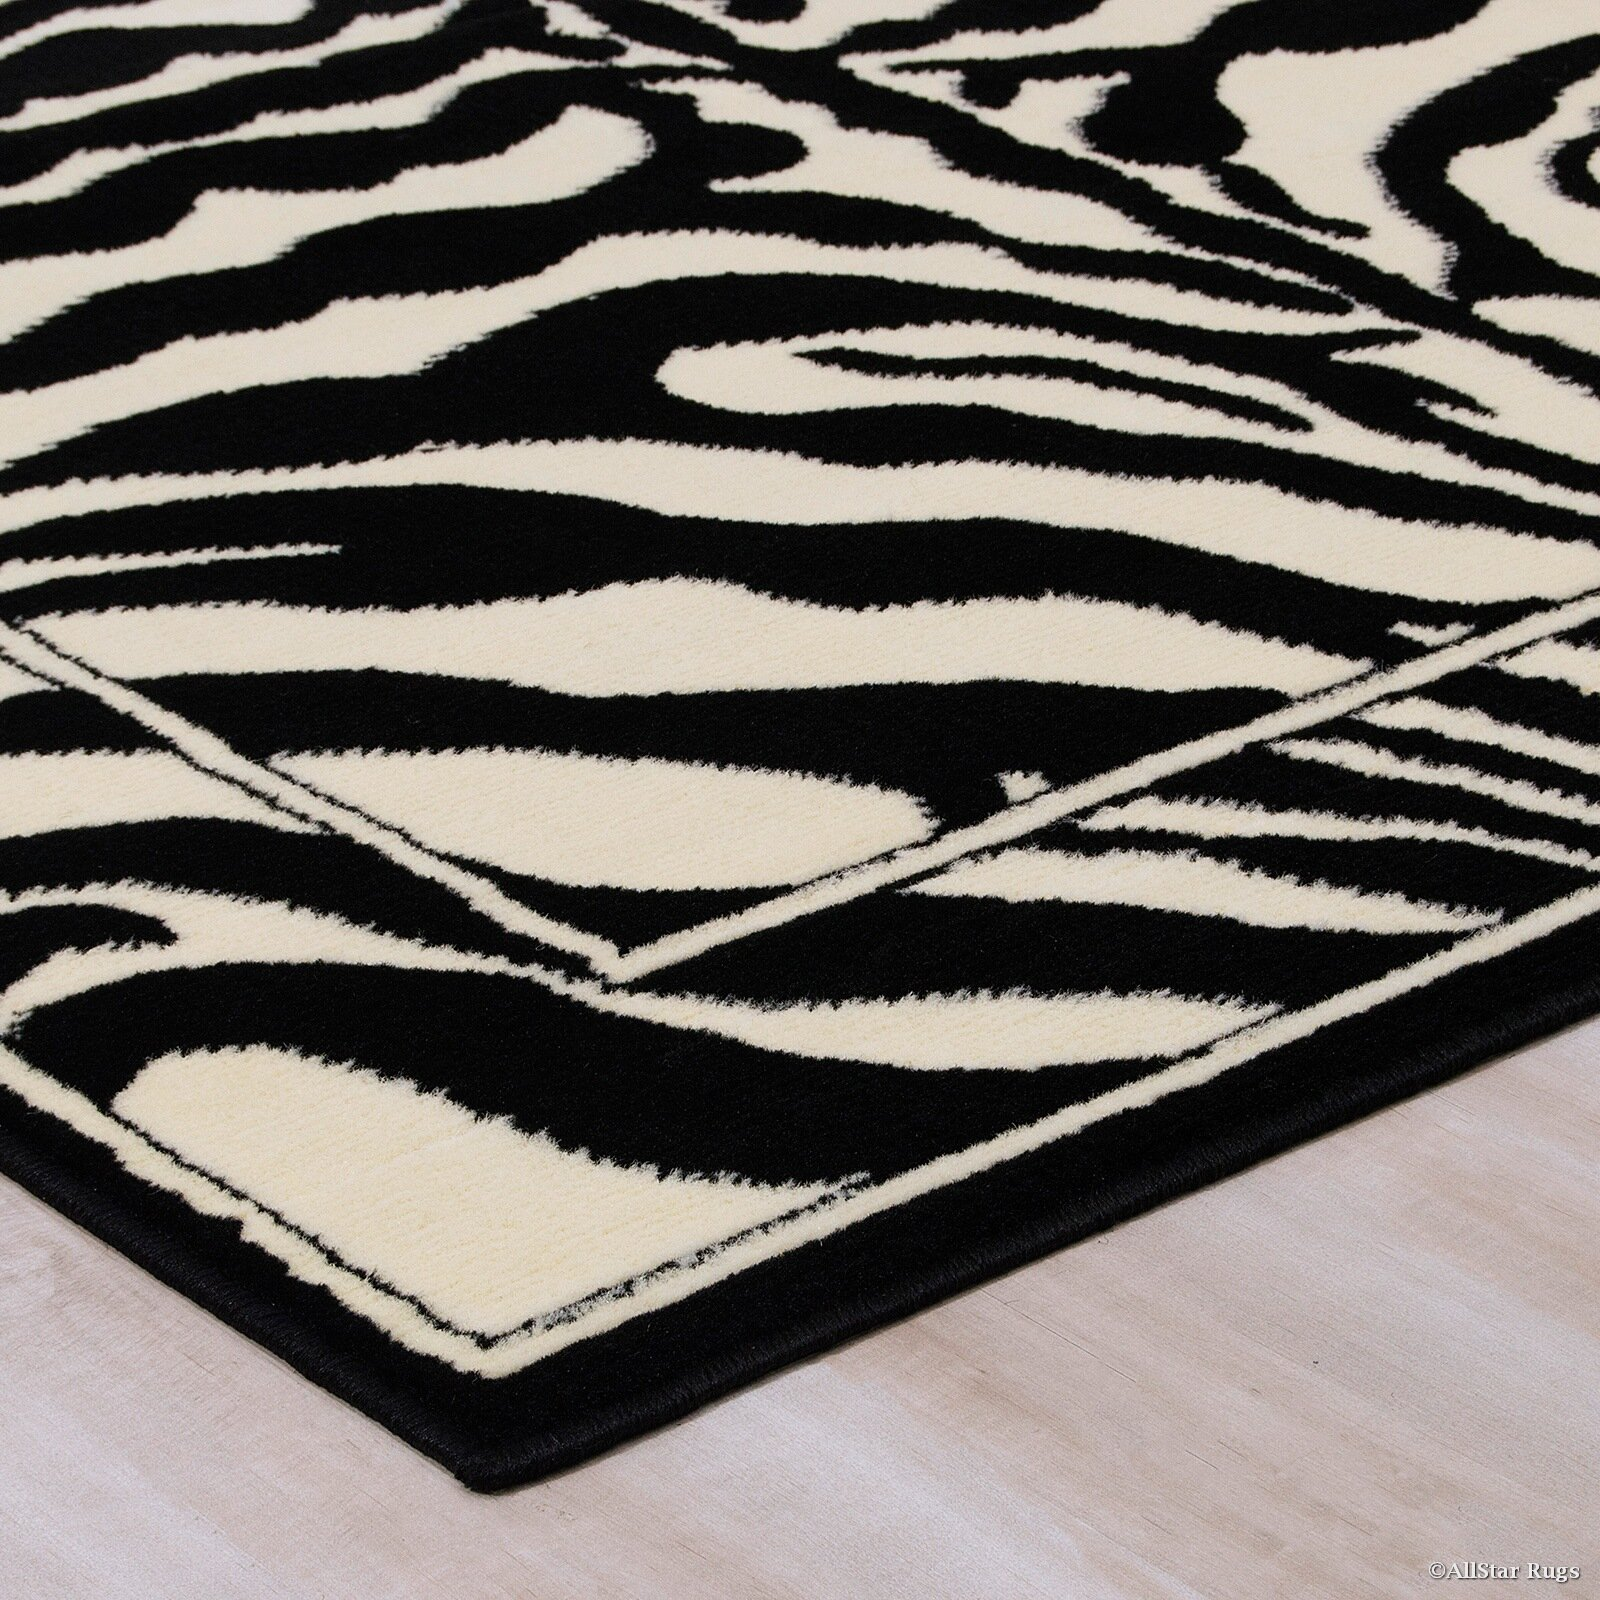 Allstar rugs hand tufted white black area rug reviews - Black and white rug ...